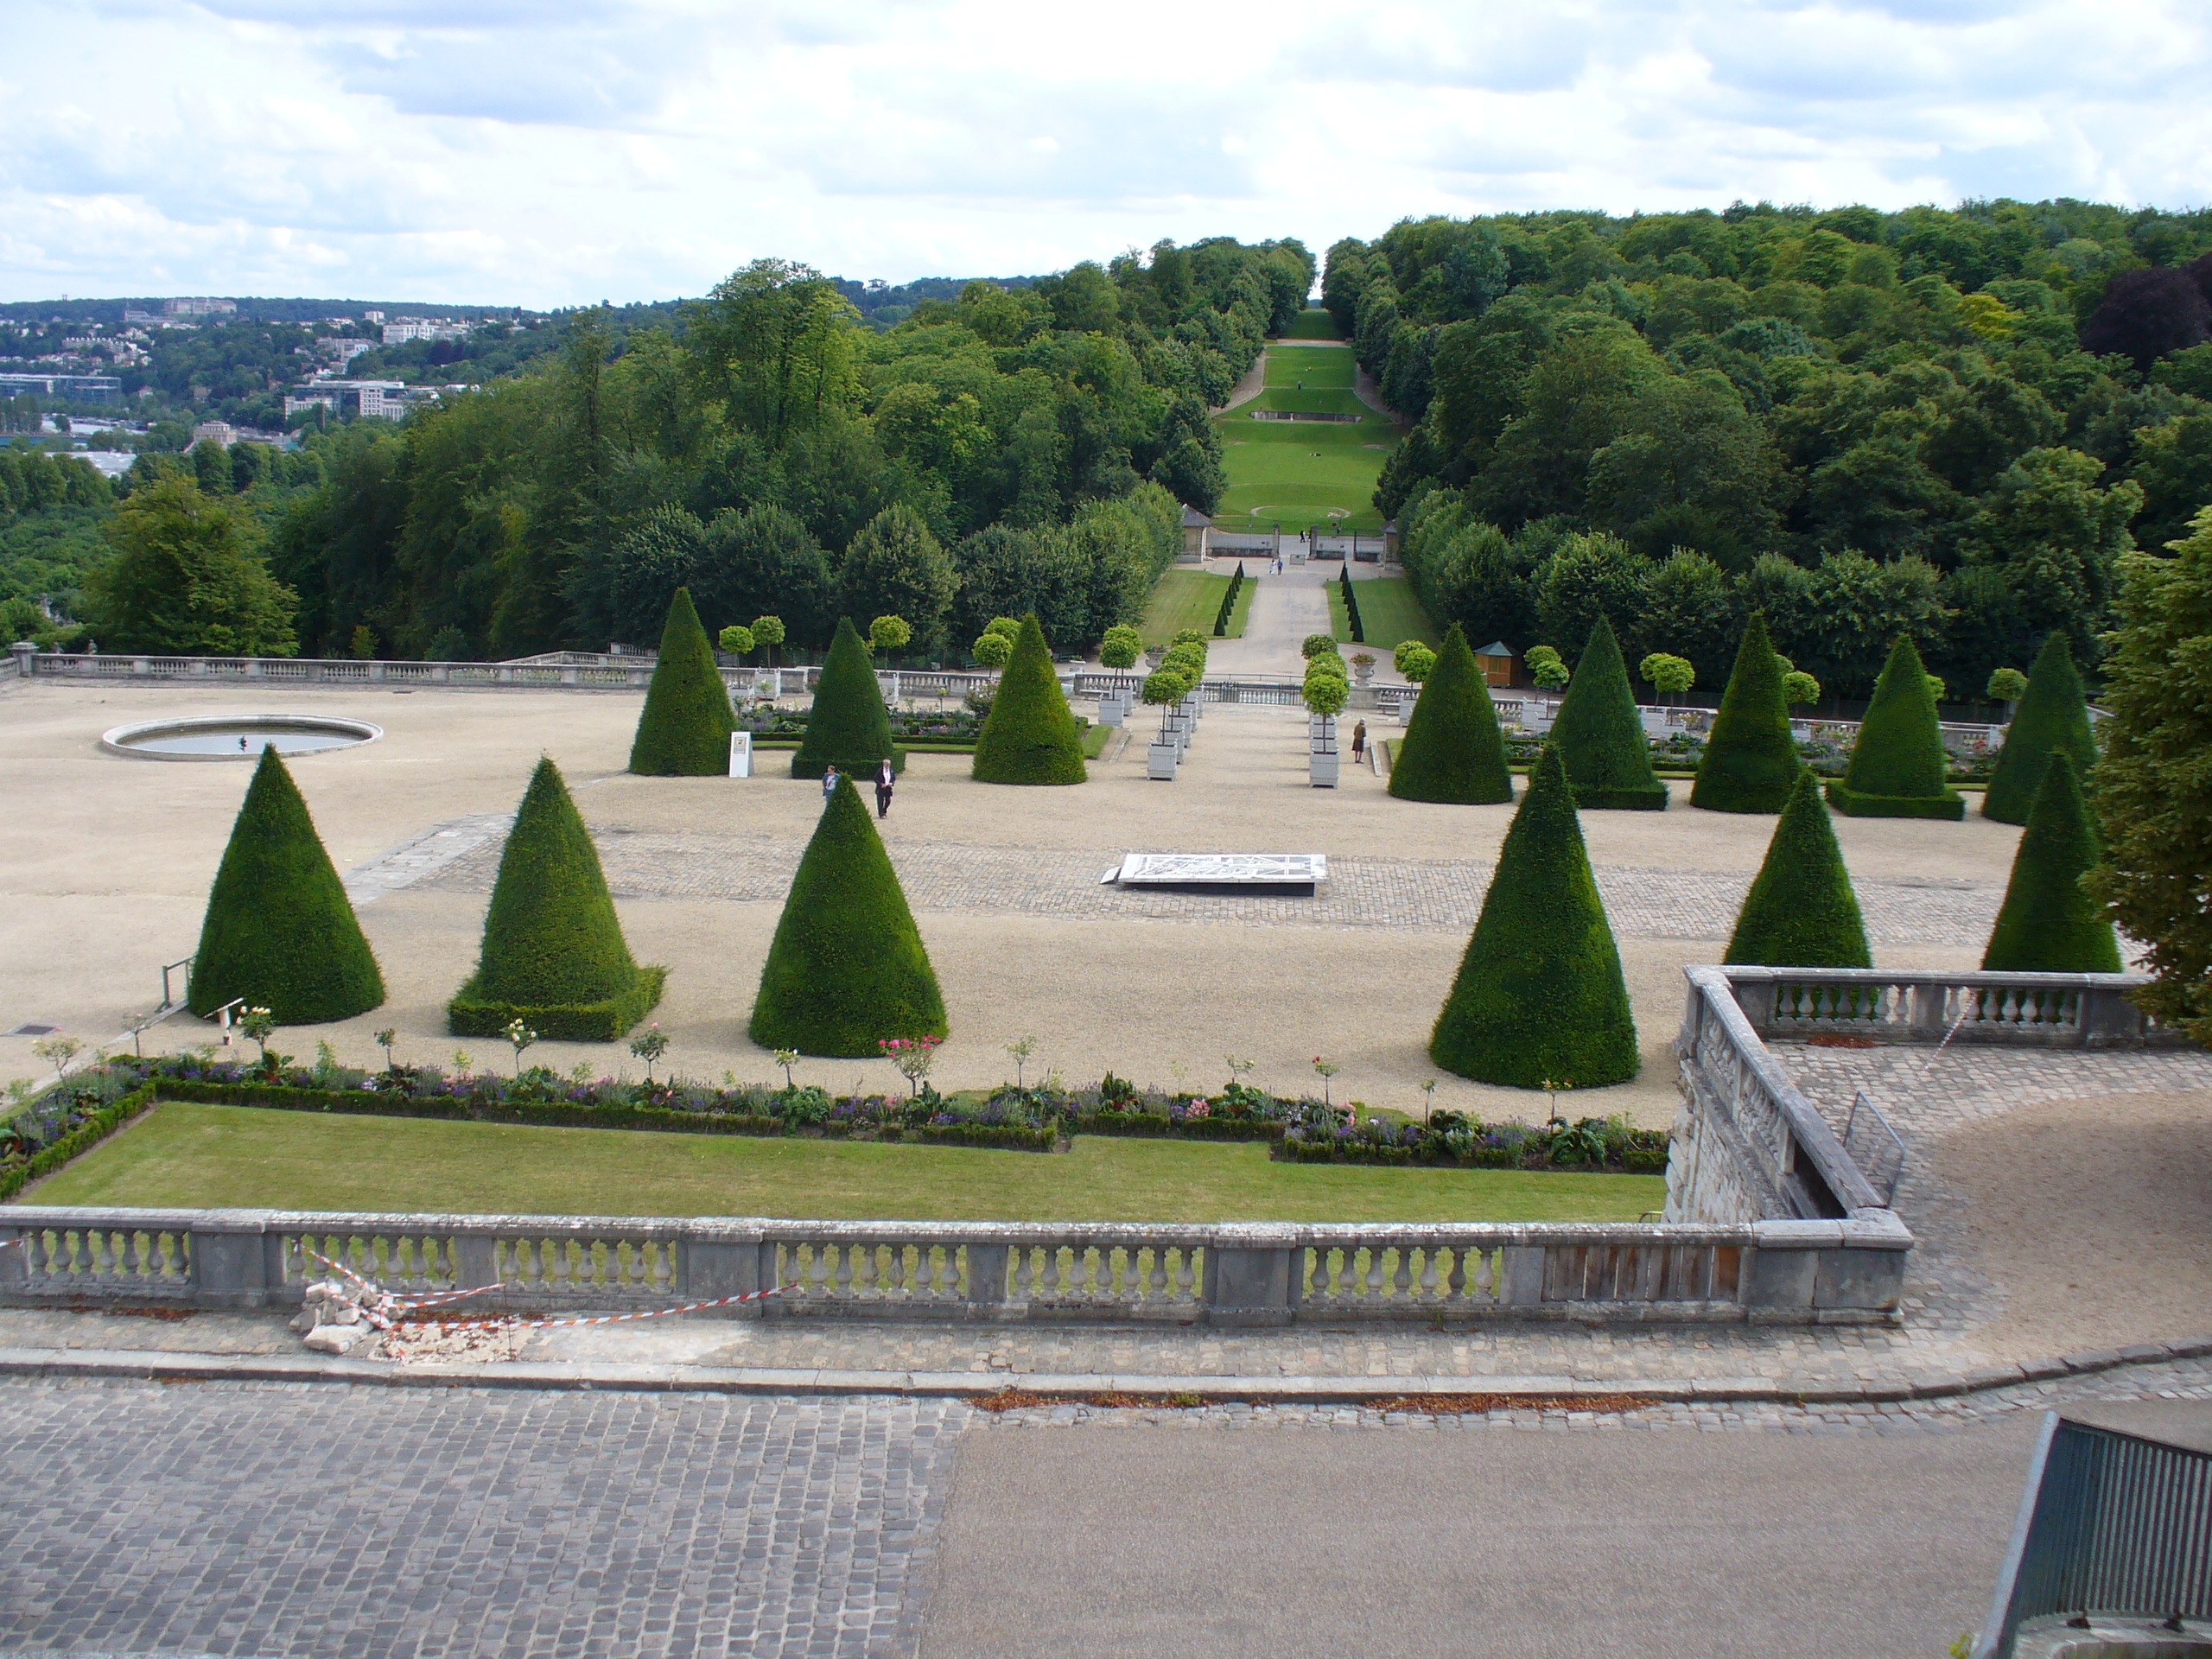 2176-parc_saint-cloud_92.jpg